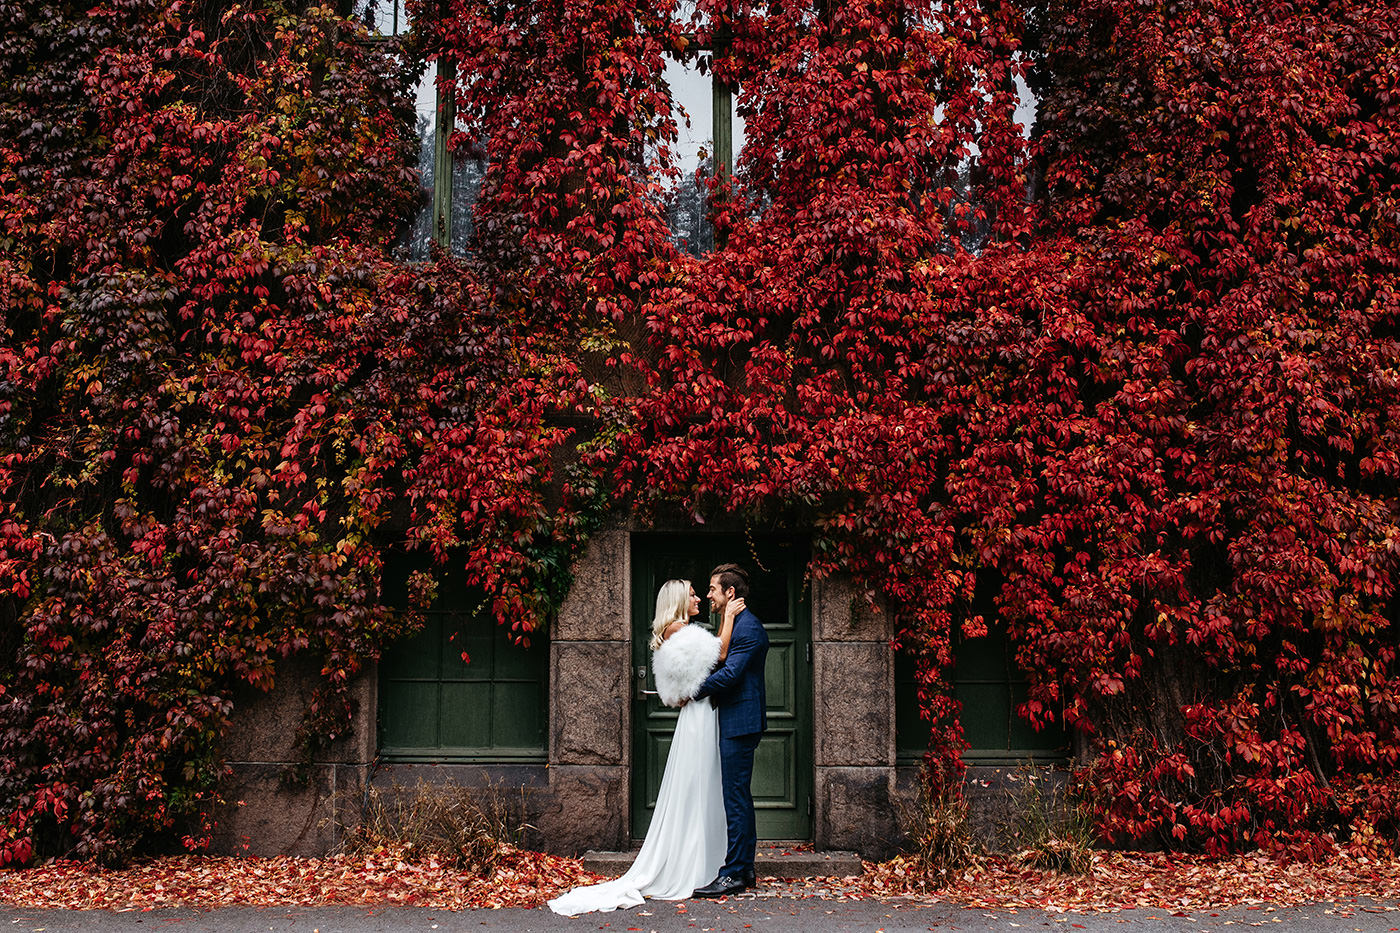 Oslo botanical gardens Norway wedding elopement couple